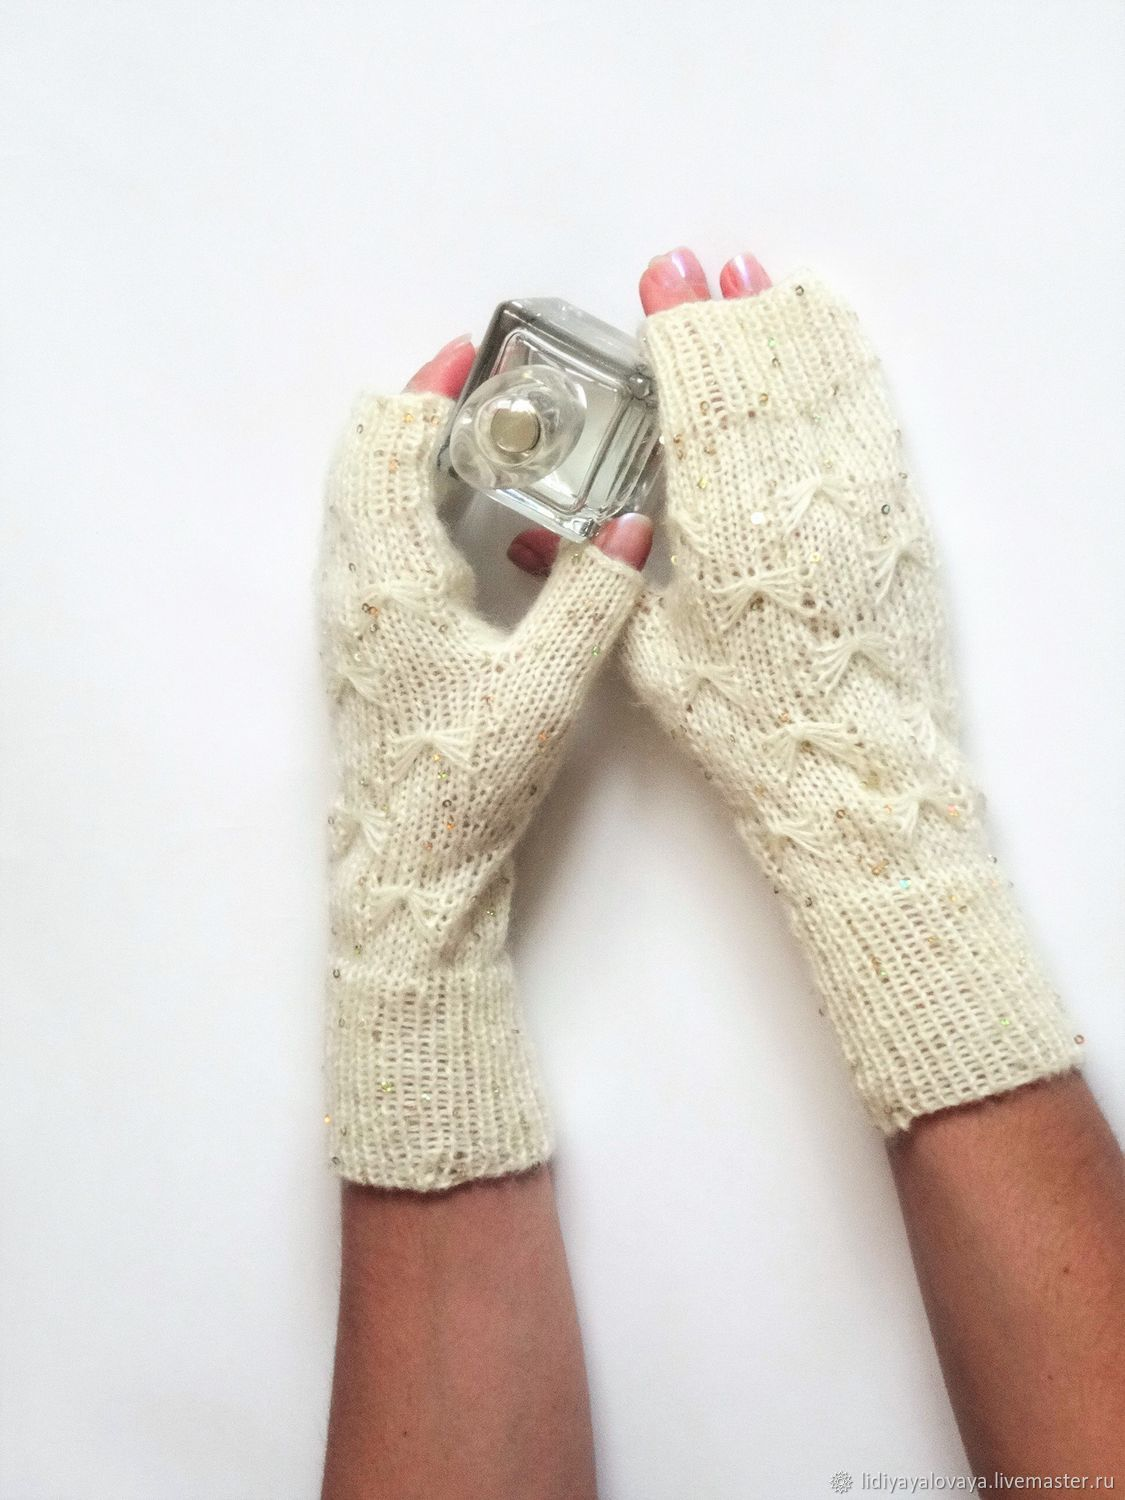 mitts, mitts to buy fingerless gloves winter, fingerless gloves for women, fingerless gloves autumn mittens a heathered, cream, fingerless gloves.